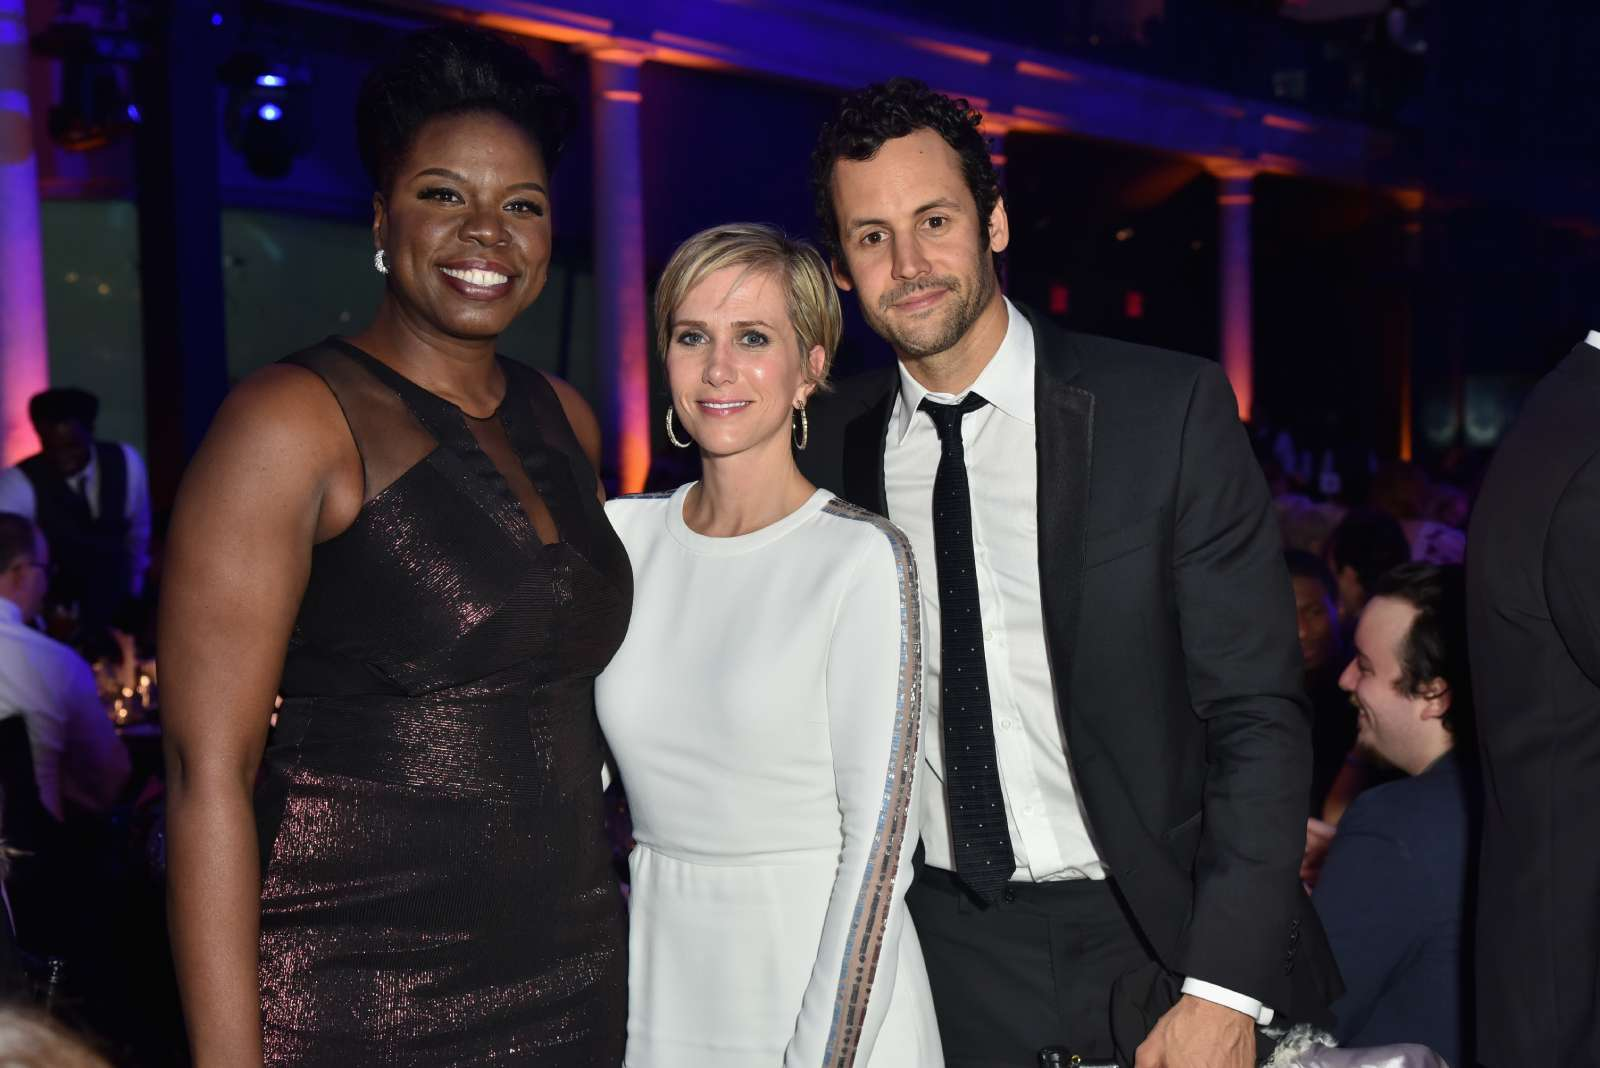 Leslie Jones, Kristen Wiig, and Avi Rothman